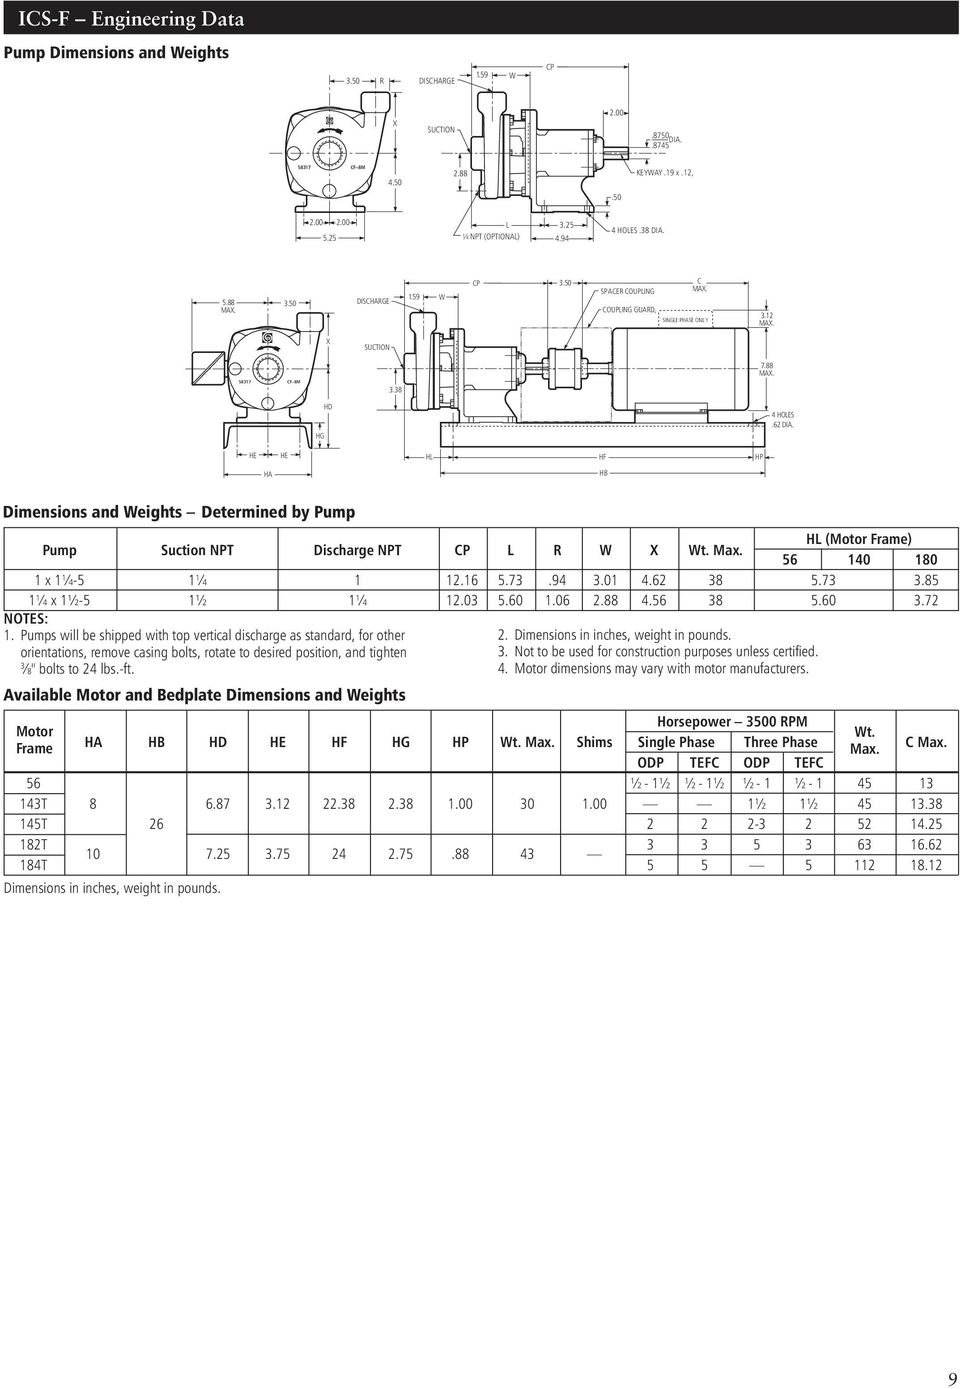 HE HE HL HF HP HA HB Dimensions and Weights Determined by Pump Pump Suction NPT Discharge NPT CP L R W X Wt. Max. HL (Motor Frame) 56 140 180 1 x 1¼-5 1¼ 1 12.16 5.73.94 3.01 4.62 38 5.73 3.